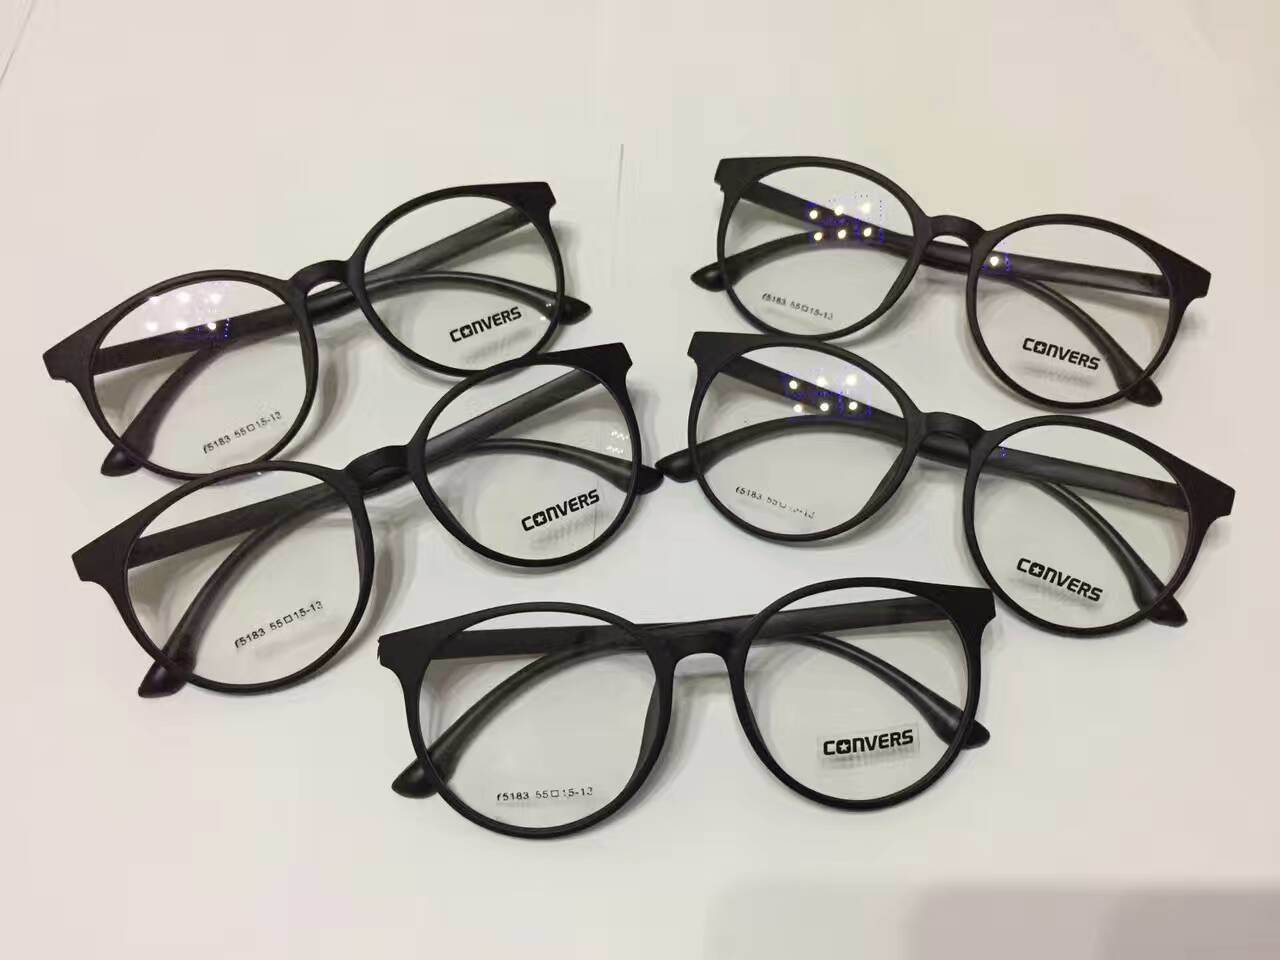 China Fancy Fake Designer Non-Prescription Glasses Frame Clear Lens ...